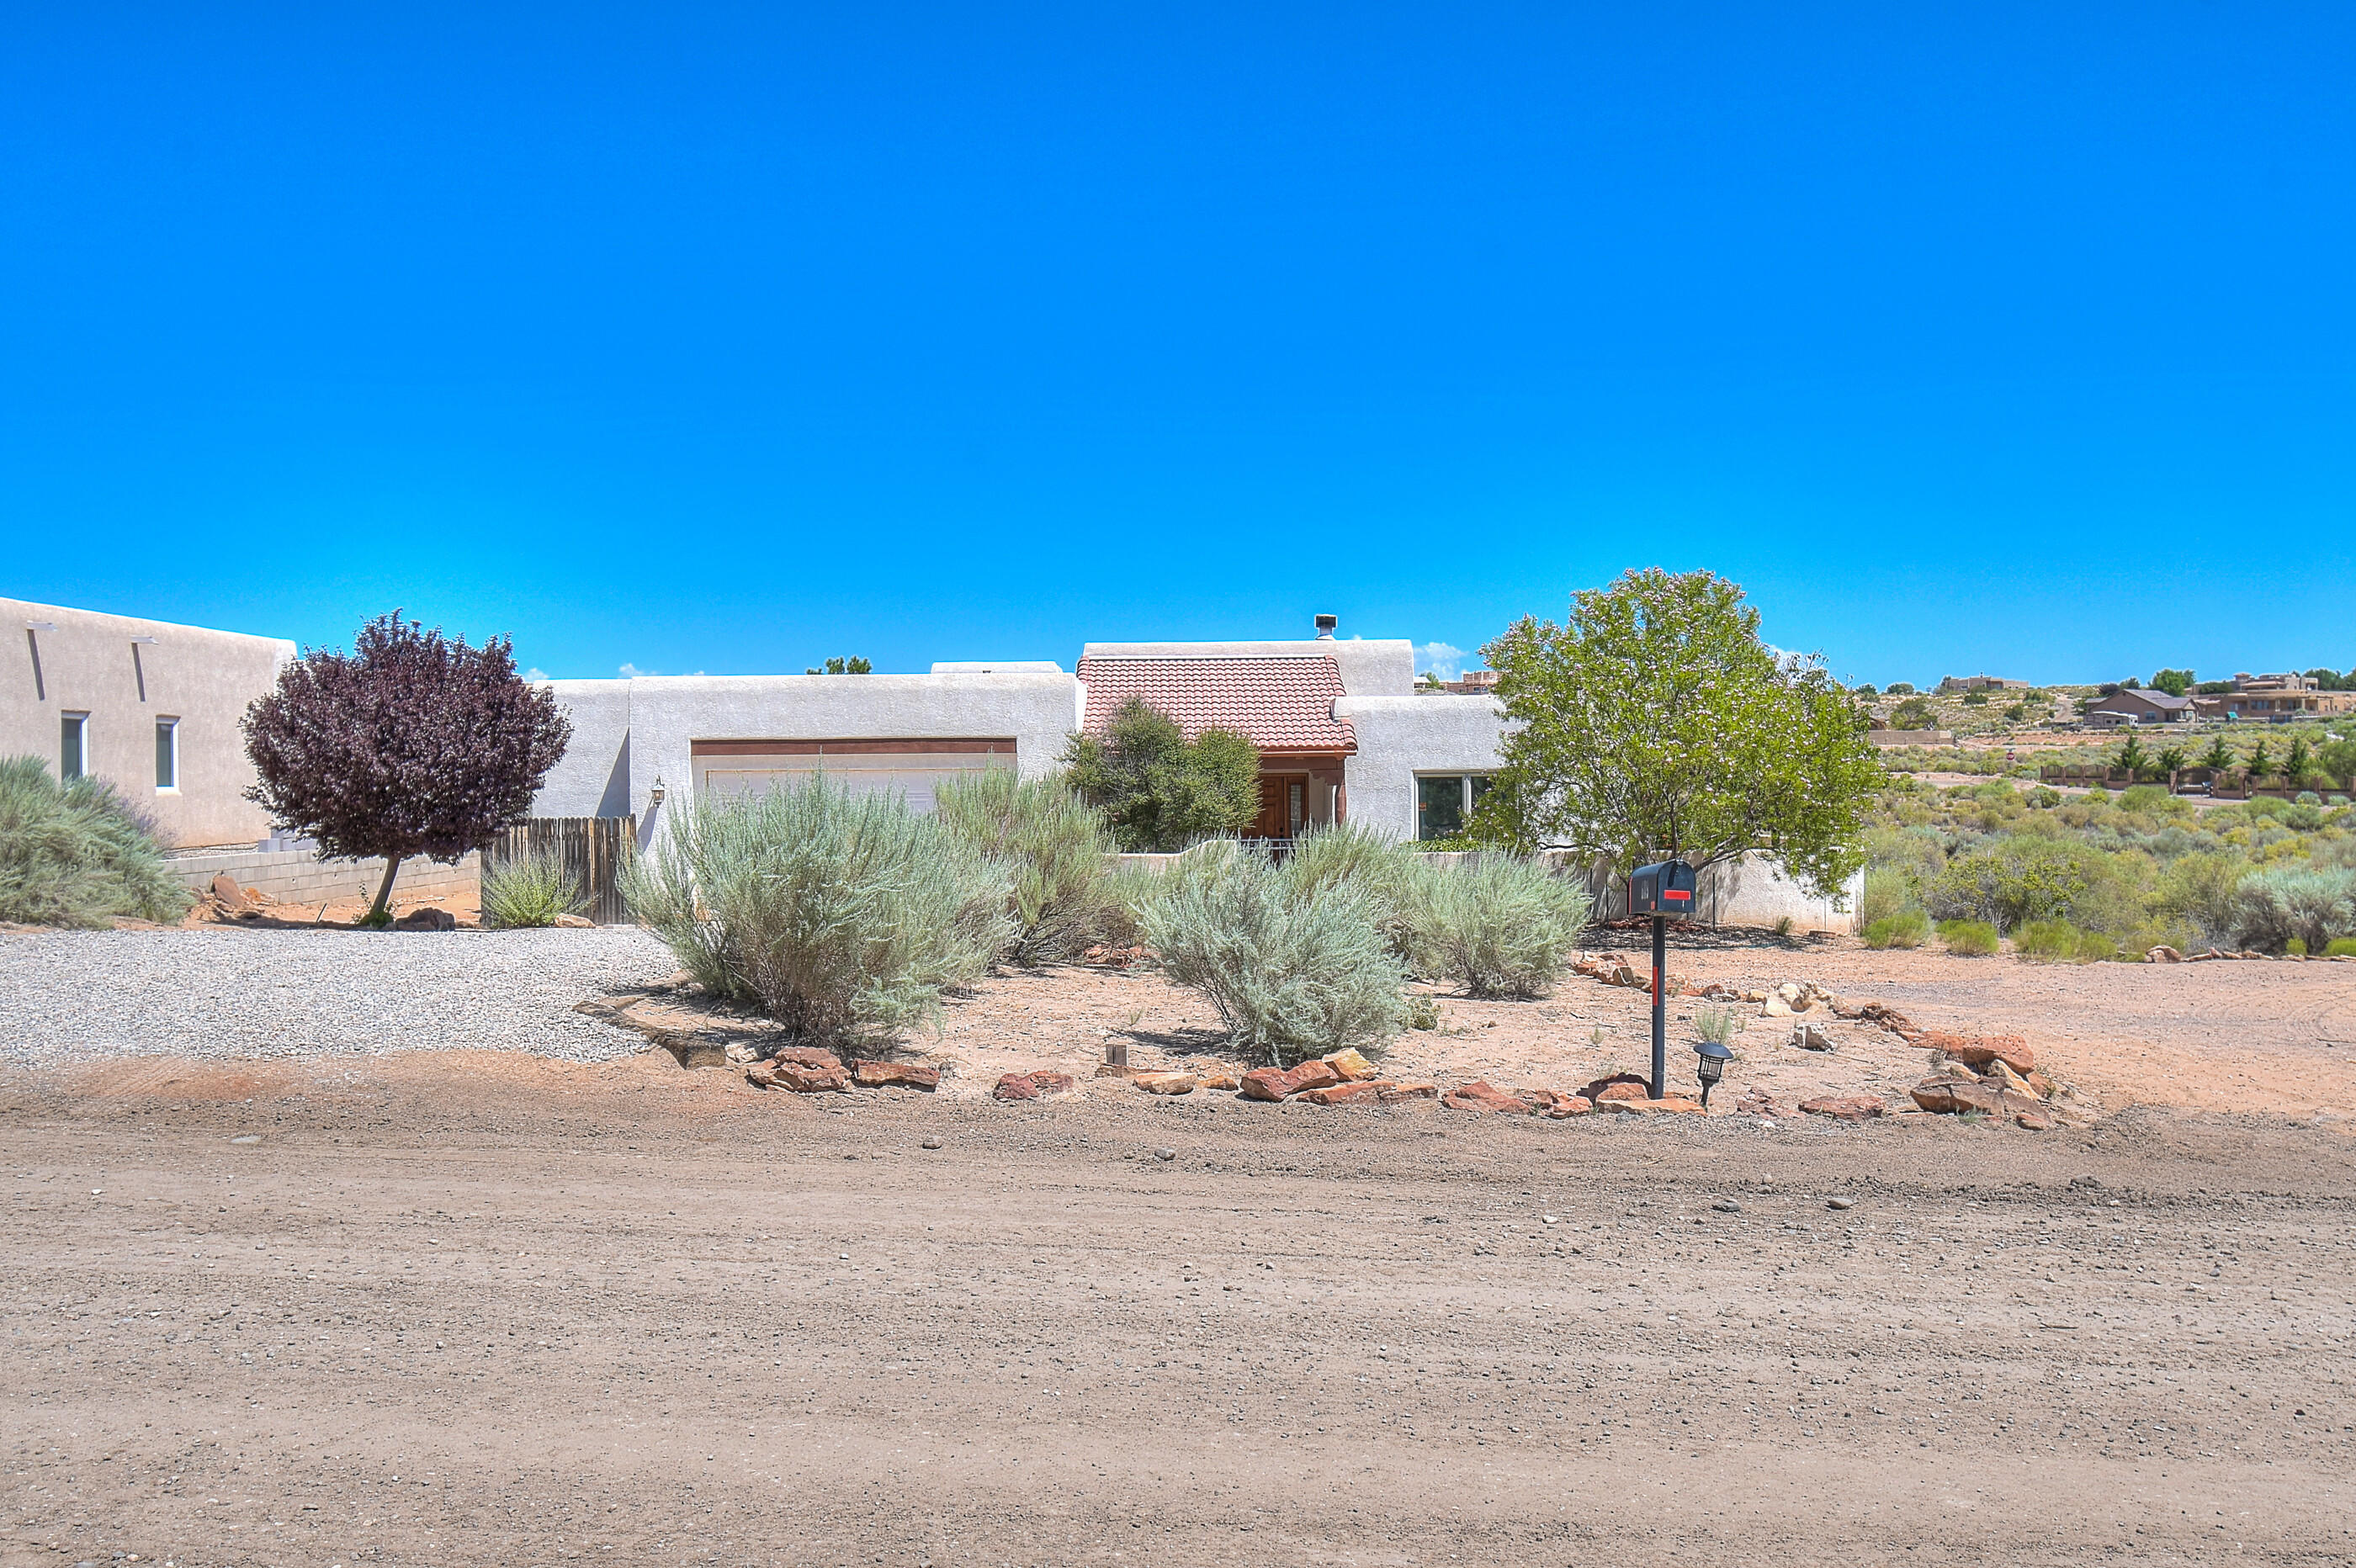 Stellar Quality & Craftsmanship in This Gorgeous Custom Home Located on a 1/2 Acre Lot w/Stunning Mtn Views! Many Fine Amenities Including 3BR+Flex Room, 3BA, HW Floors & Carpet,Great Room, Formal Dining, Gas Log Fireplace, Recessed Lighting & Designer Touches Throughout, Cool Refrigerated Air,Laundry Room W/Desk, And Much More! Chef's Delight Kitchen w/Breakfast Bar, Granite Counters, Tile Backsplash, Stainless Steel Appliances,Gas Range Stove, Wine Rack, and Pantry. Fabulous Master Suite Boasts A Luxurious Bathroom, Huge Walk In Closet, Tiled Shower And His & Hers Vanities. Two Spacious Rooms & Full Bath To Follow! Beautiful Courtyard W/ Xeriscaped Landscaping in Front & Two Covered Patios In Back Add To The Magnificence of This Spectacular Home. Come See It Today!